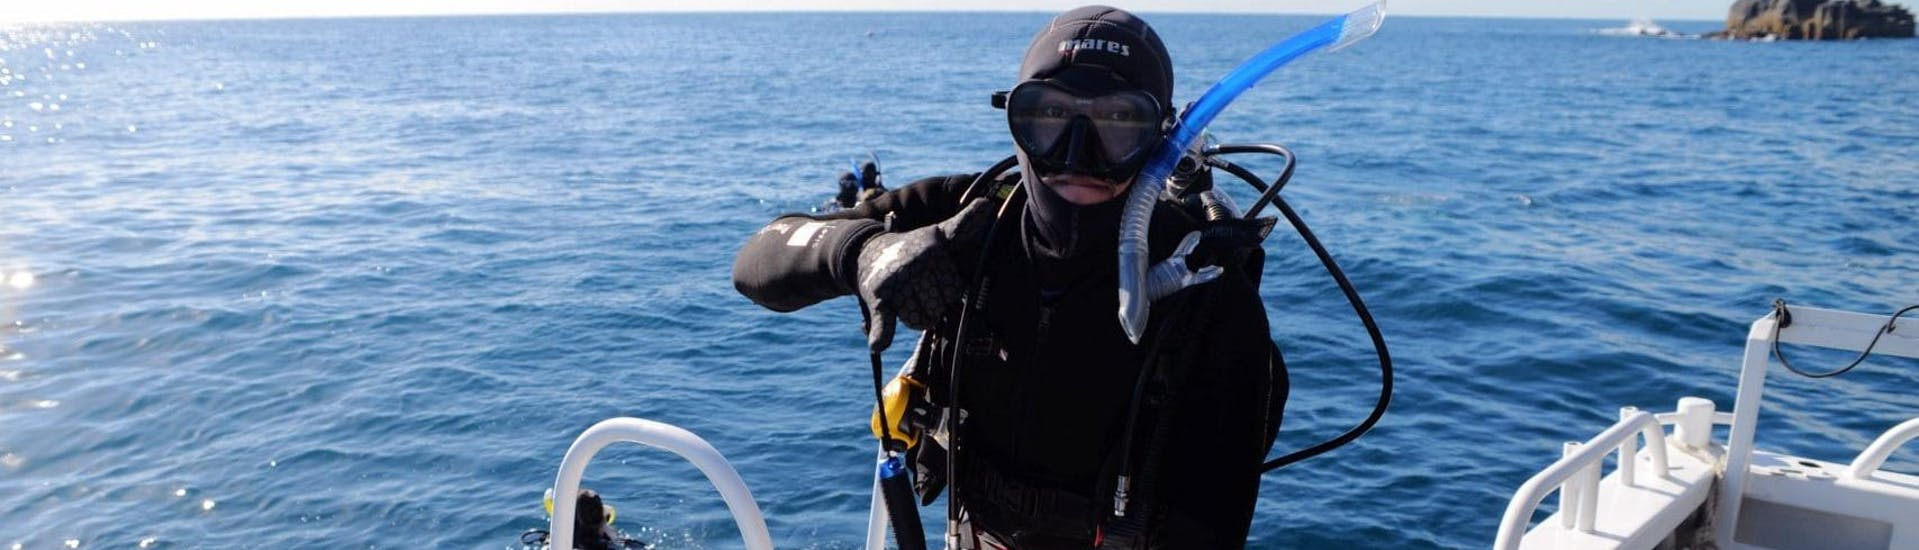 A man is just about to dive with his dive instructor from Gold Coast Dive Centre during the Guided Shore Dives at Wave Break Island for Certified Divers.